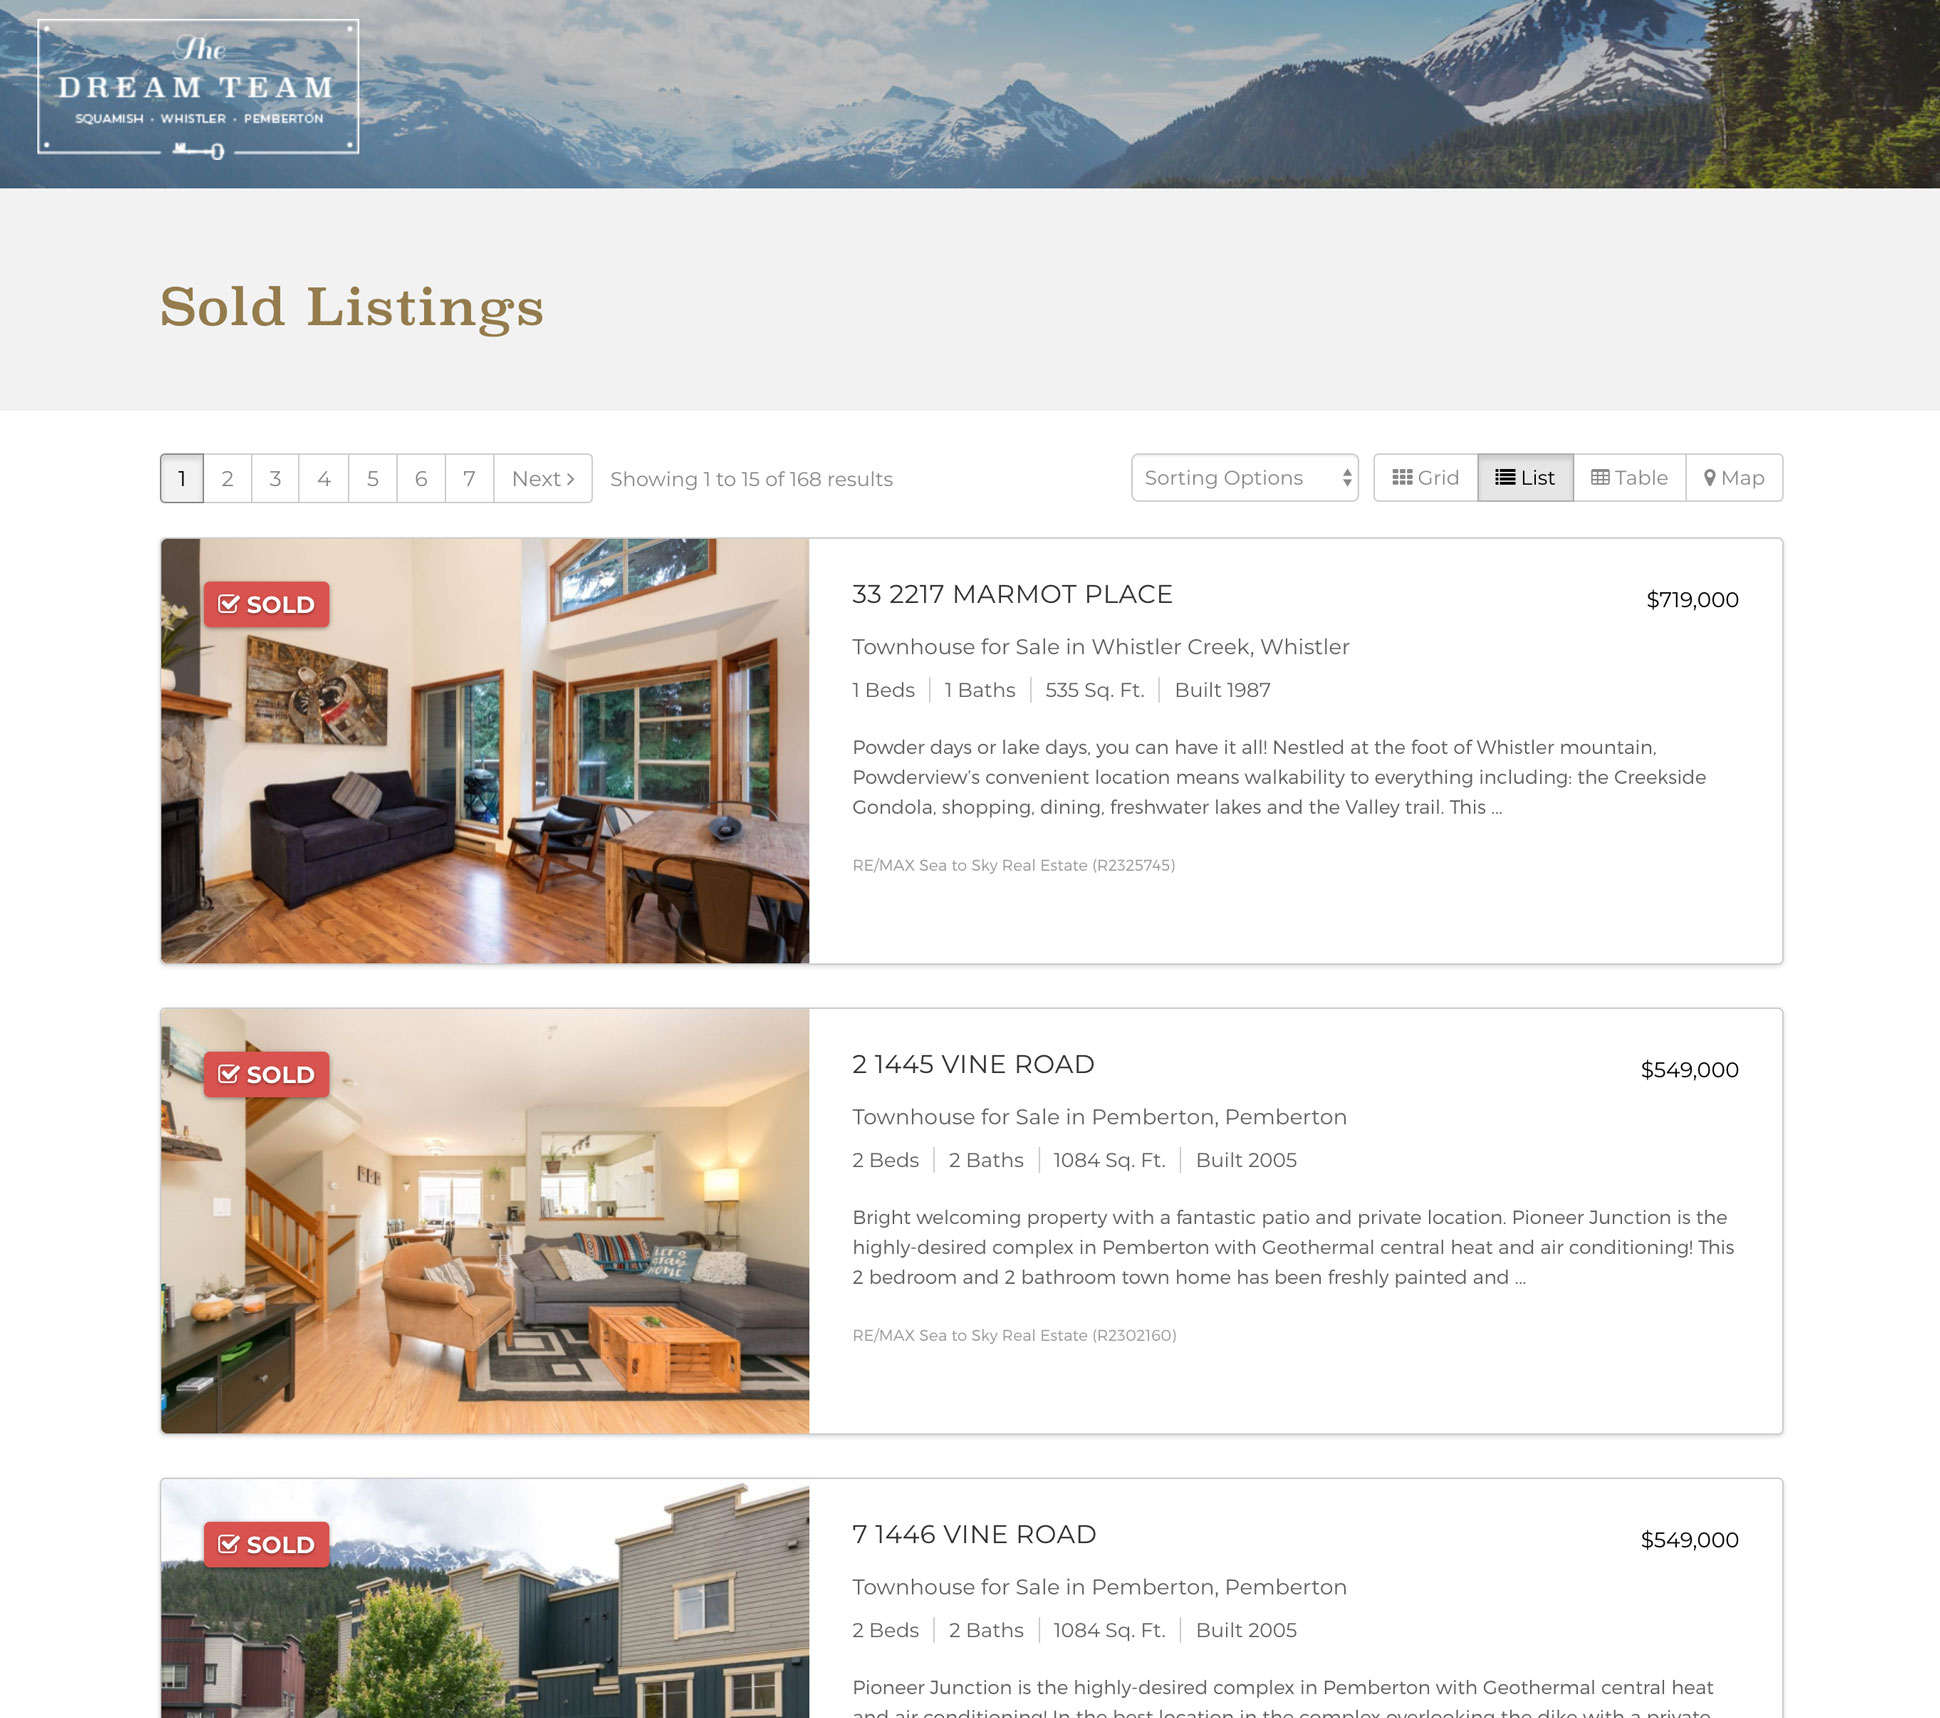 Sea to Sky Dream Team - Sold Listings in Landing Page Mode